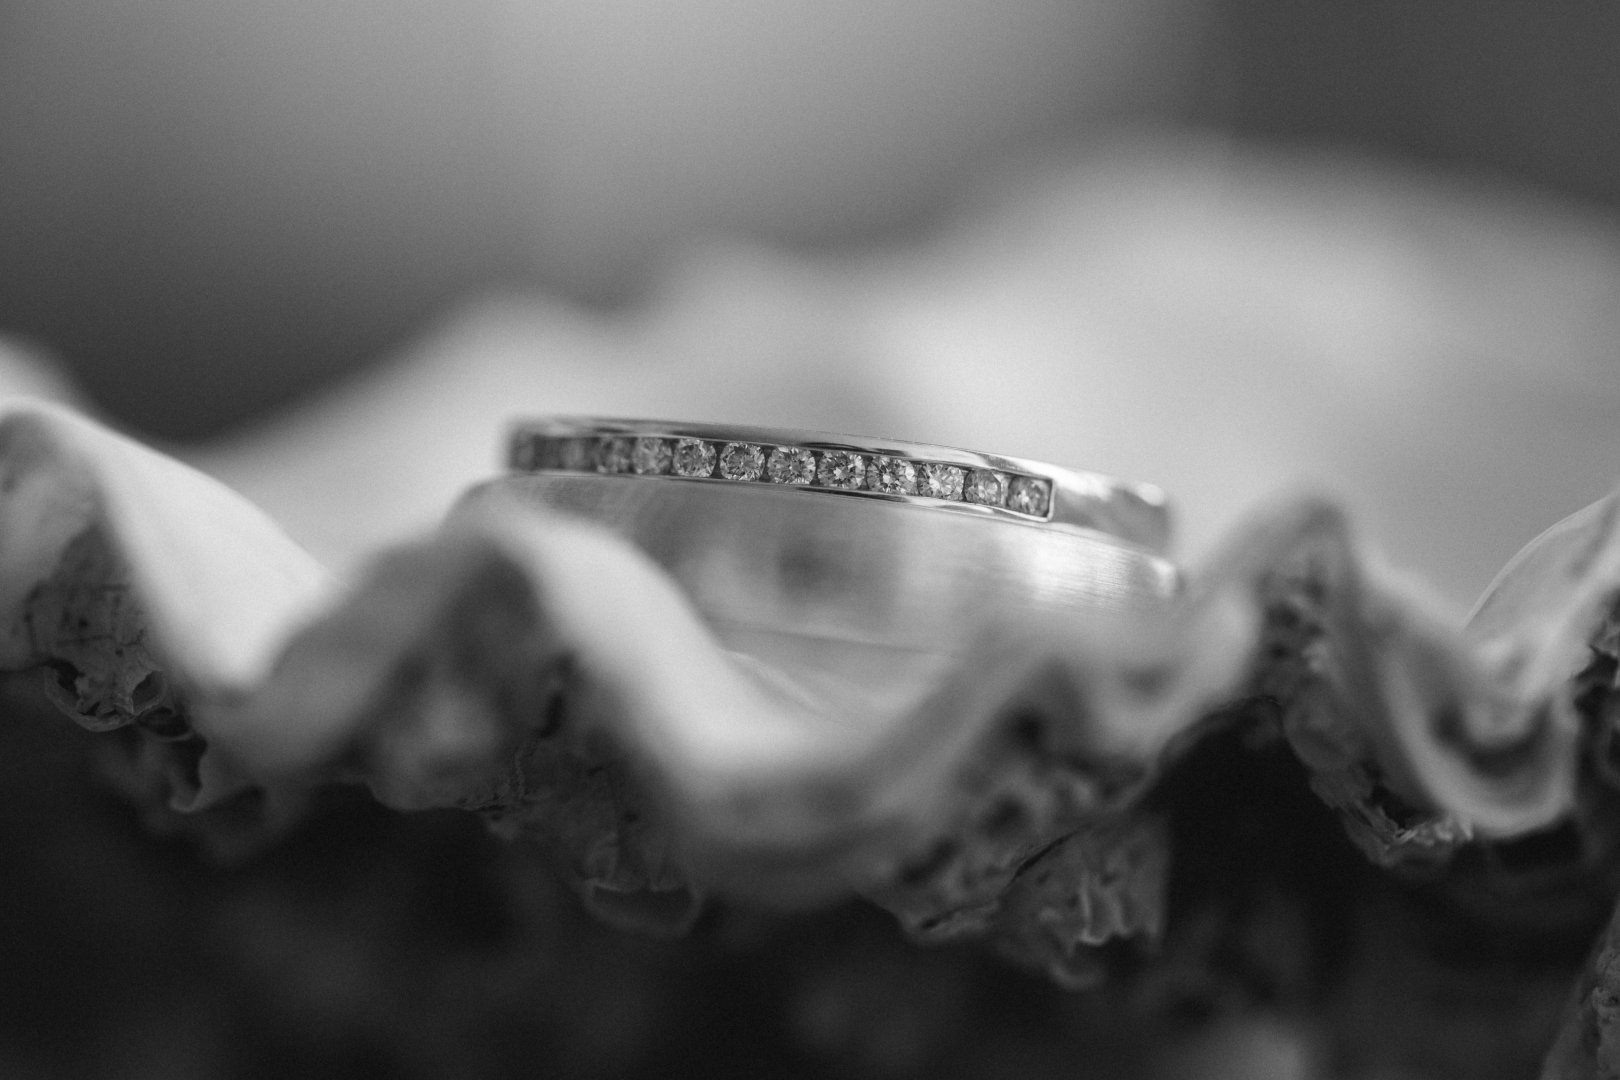 White Photograph Black-and-white Close-up Monochrome photography Macro photography Monochrome Photography Jewellery Ring Fashion accessory Still life photography Hand Metal Wedding ring Bracelet Stock photography Wedding ceremony supply Silver Style